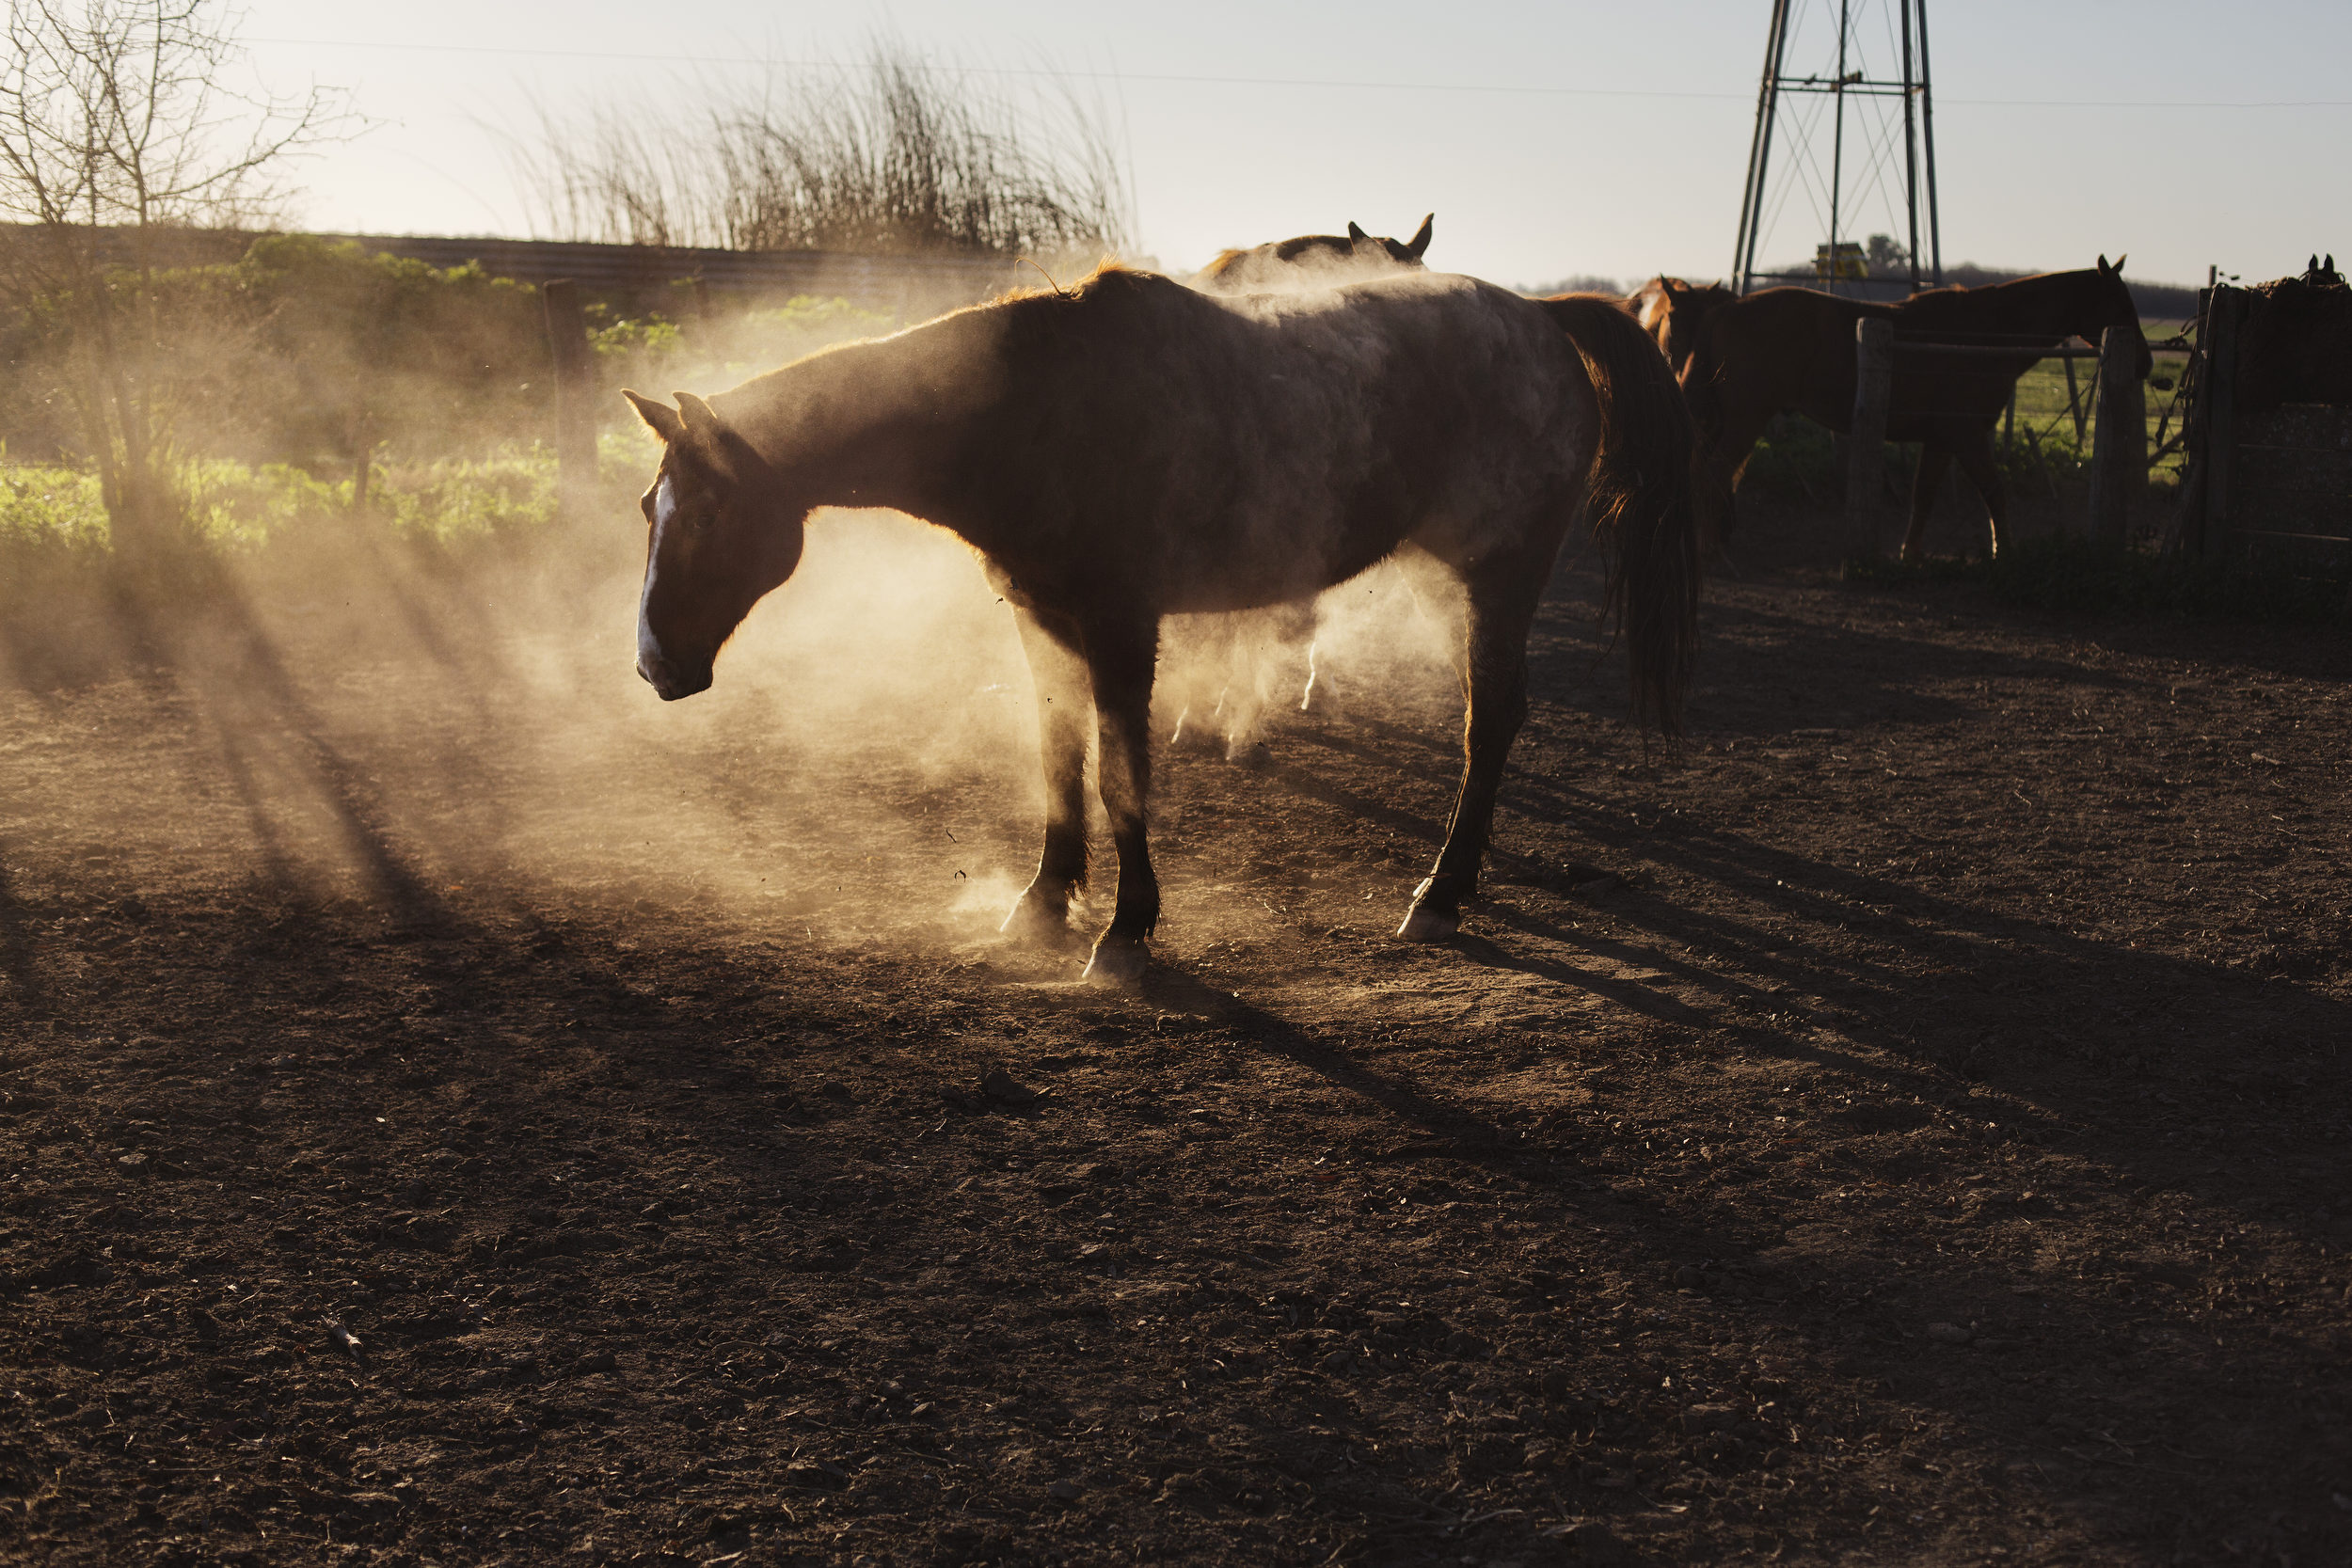 Dusty afternoon.